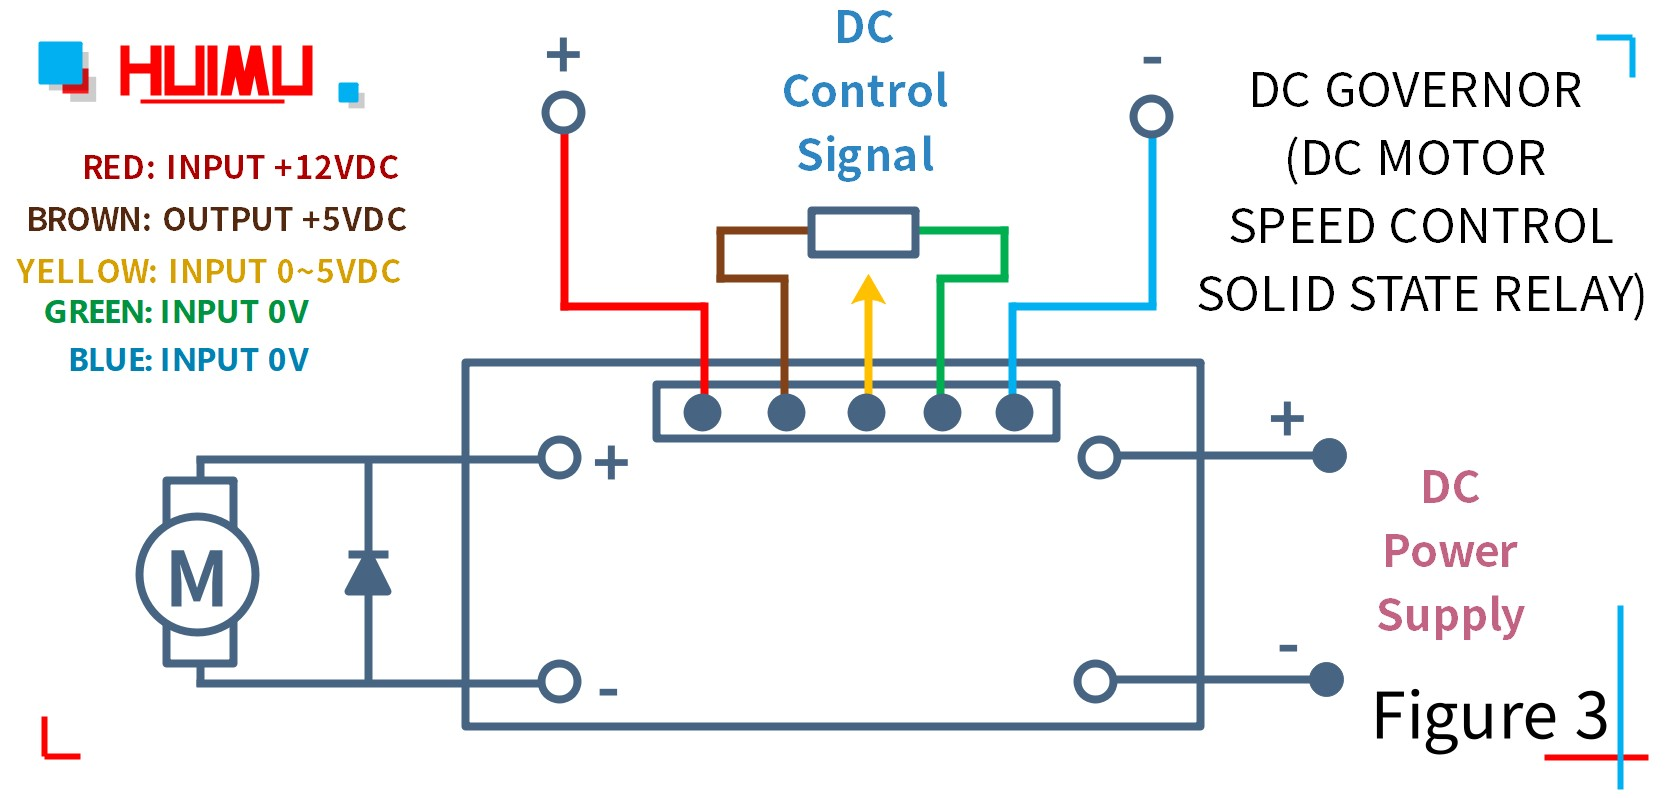 single phase 3 speed motor wiring diagram motor speed or direction controller solid state relay wiring  motor speed or direction controller